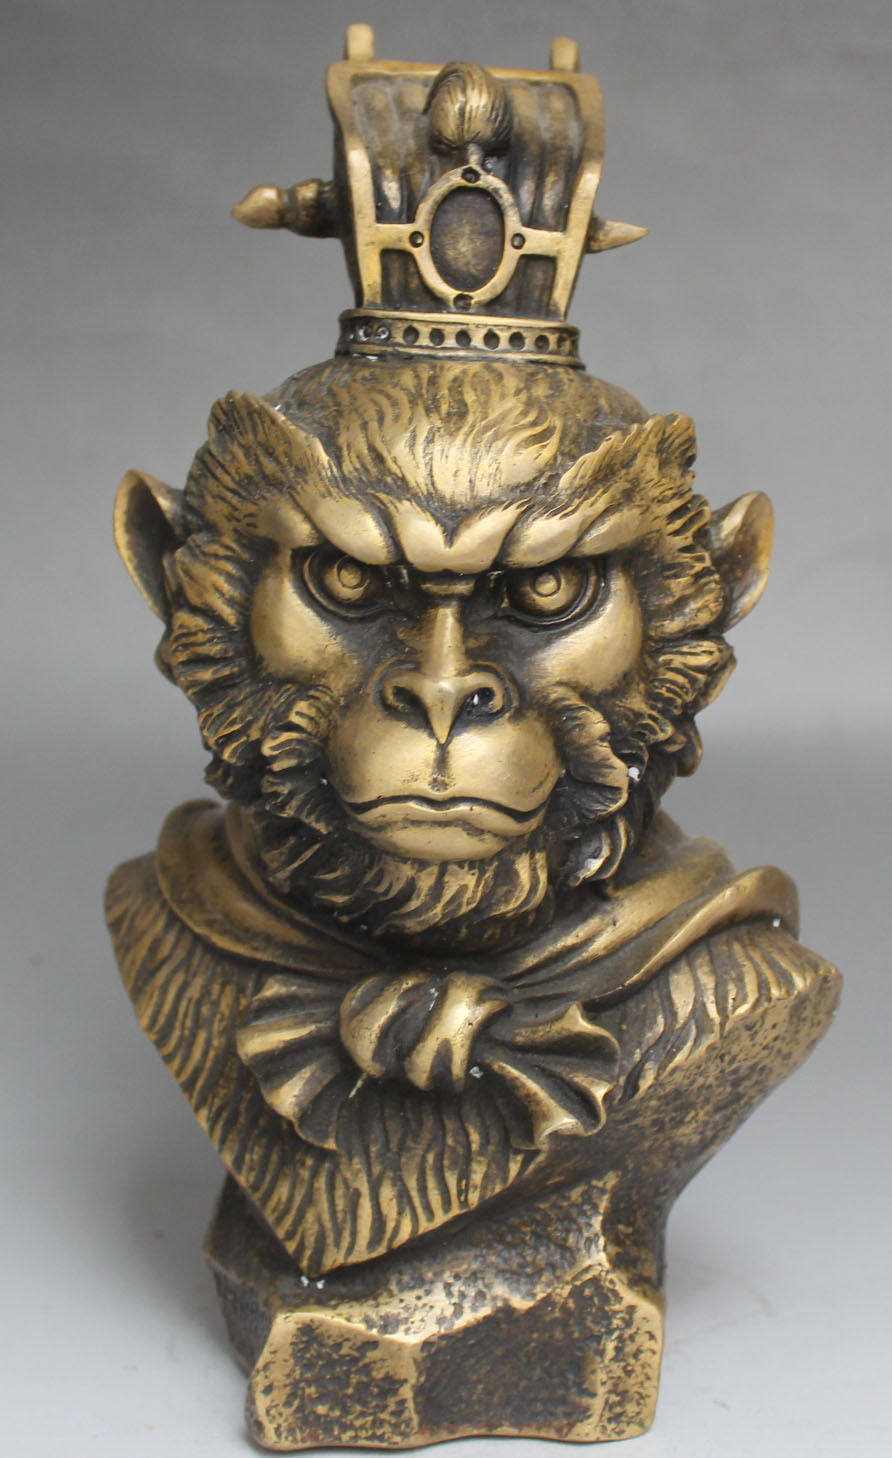 Chinese Mythos Bronze Handsome Sun Wukong Monkey King Head Bust Statue SculptureChinese Mythos Bronze Handsome Sun Wukong Monkey King Head Bust Statue Sculpture